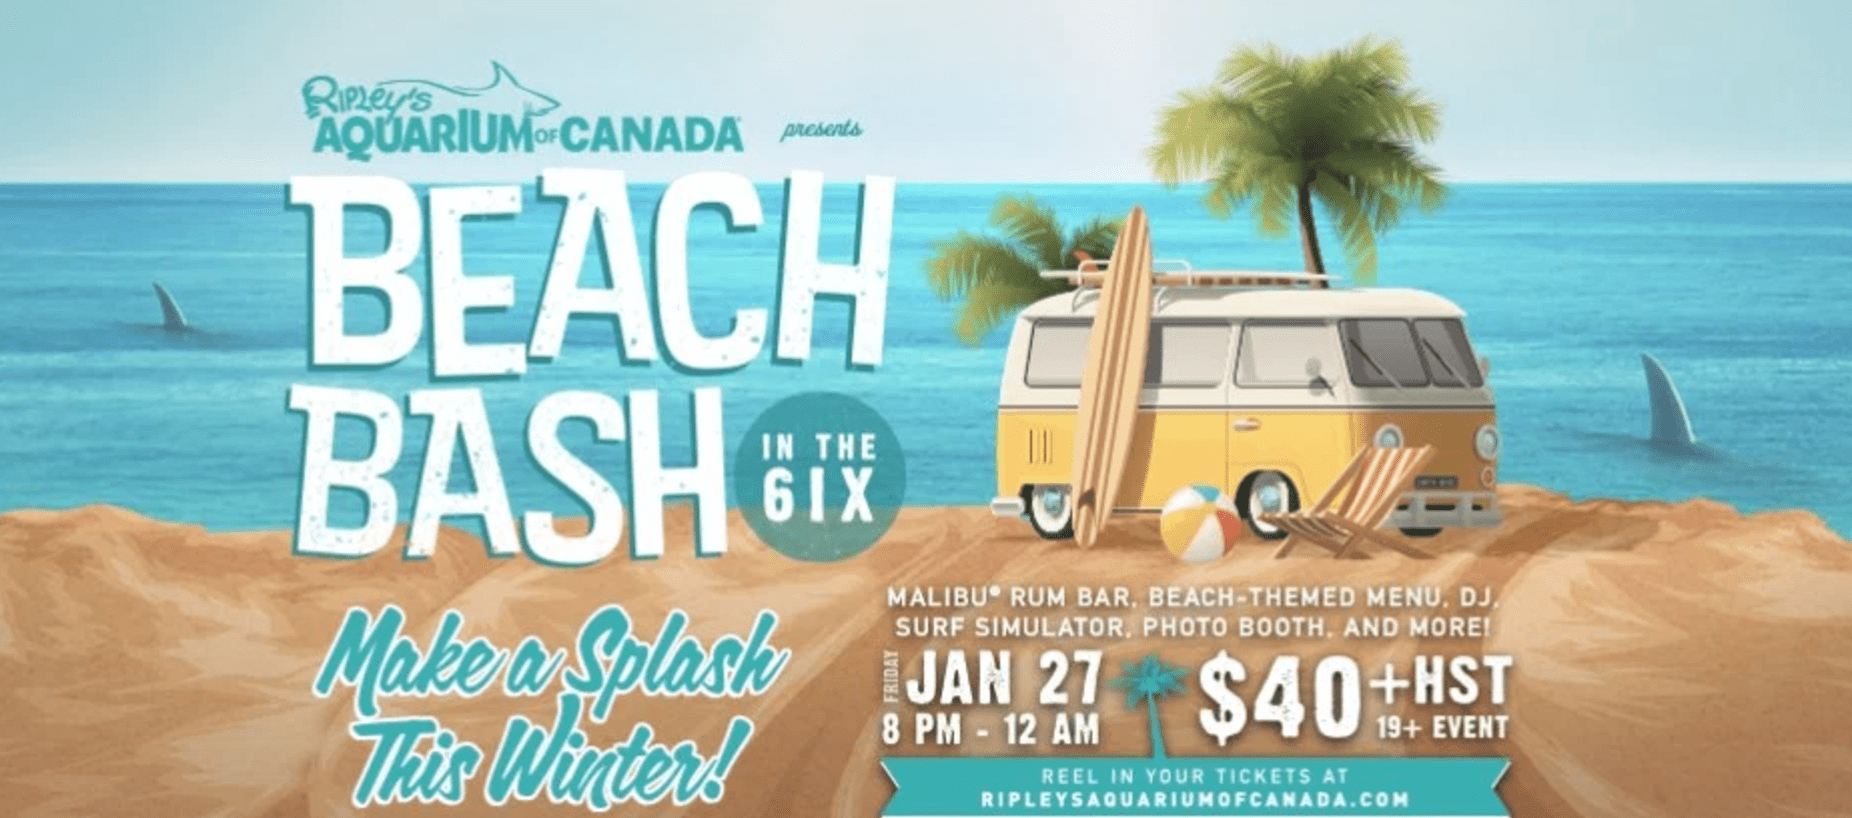 Planet beach coupons canada